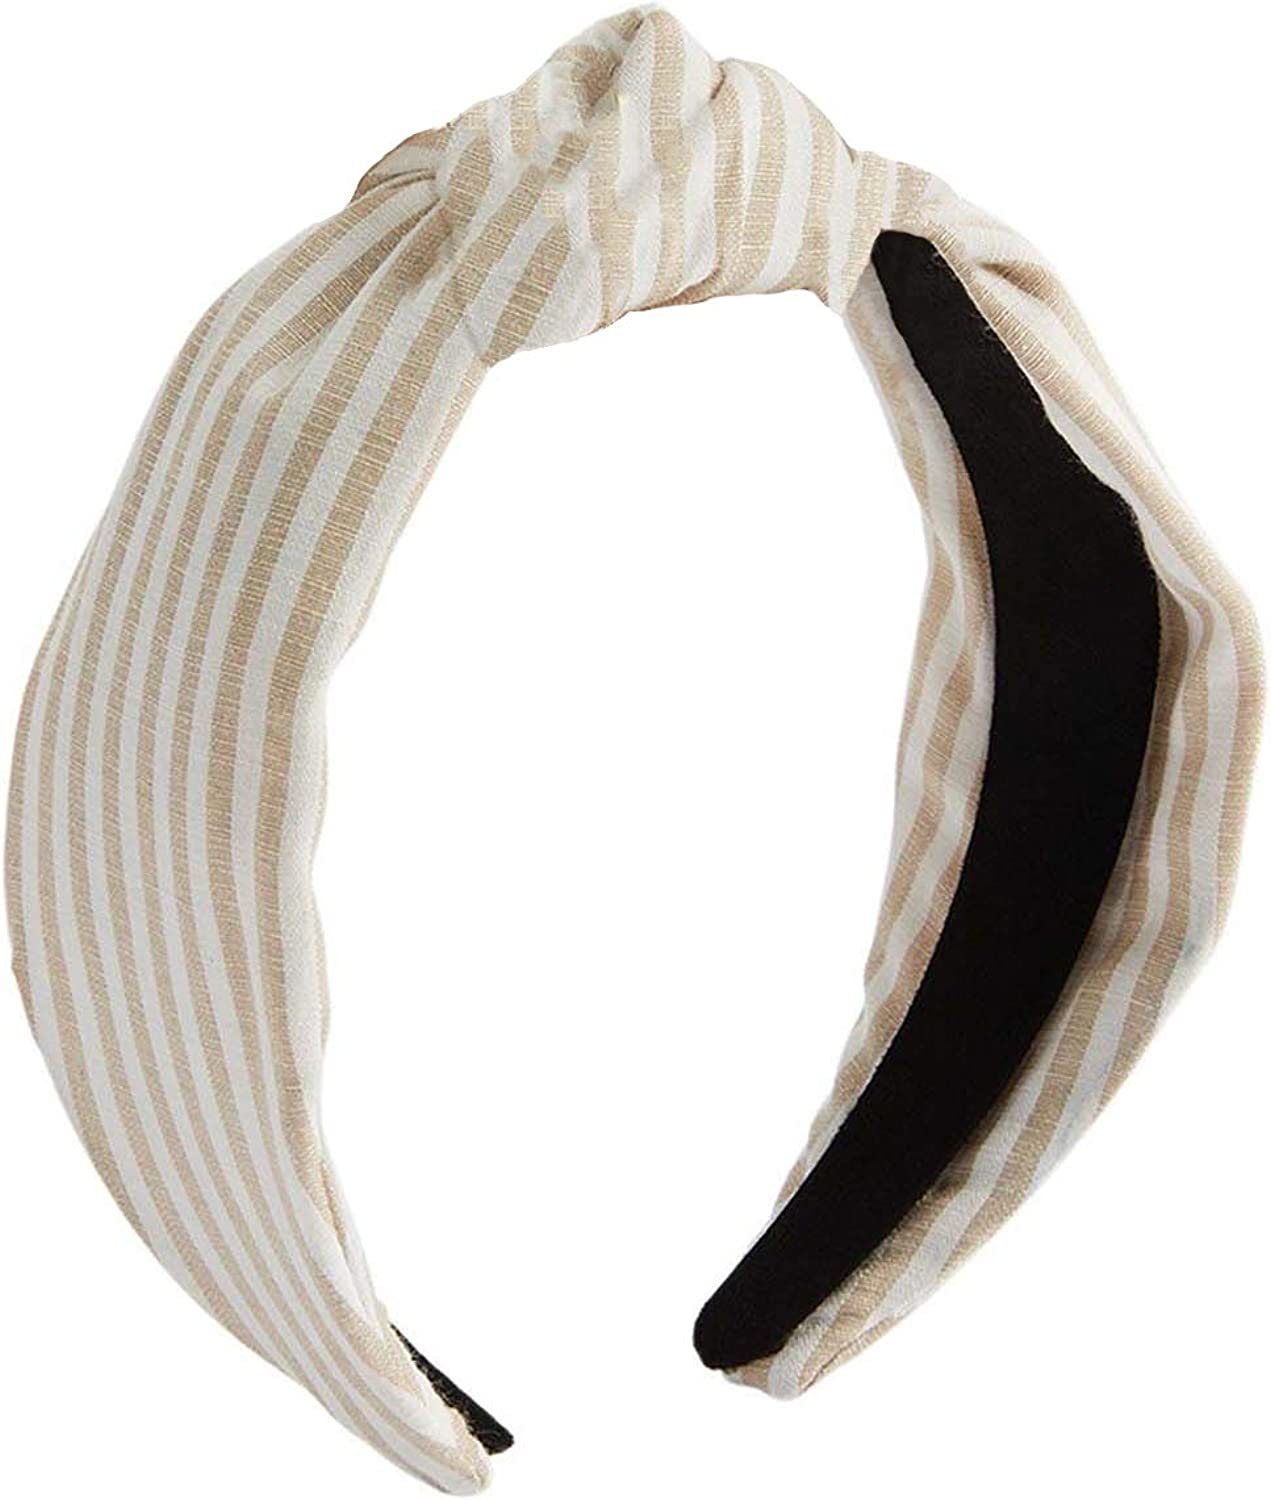 Mud Pie Women's Patterned Knotted Headband